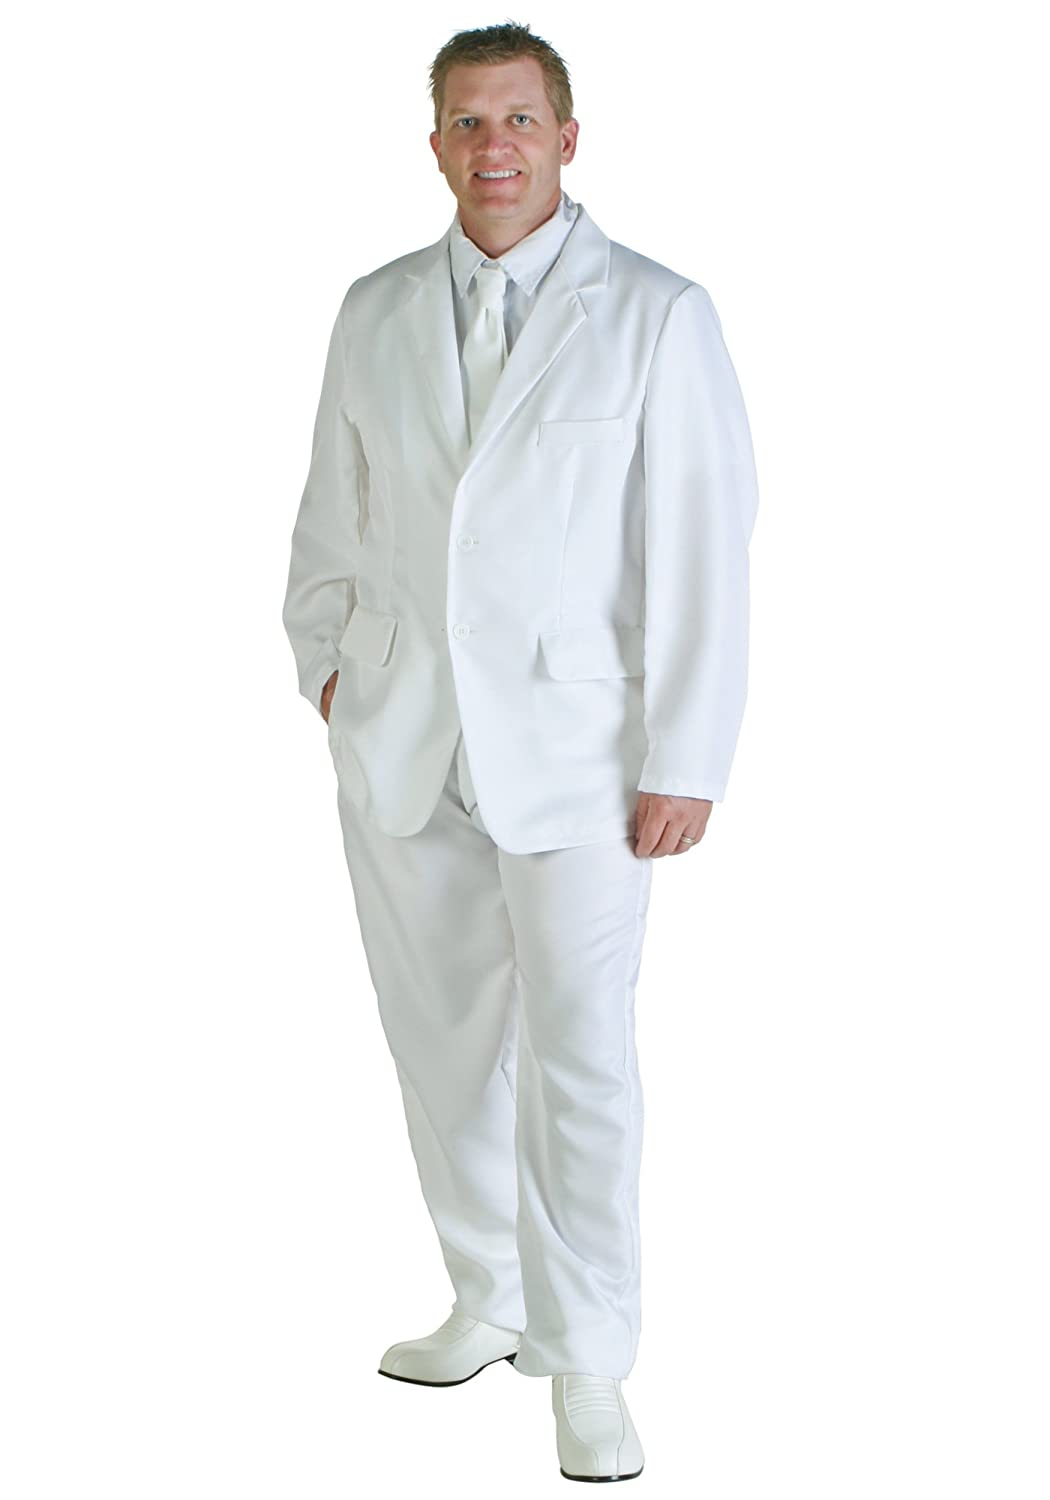 70s Costumes: Disco Costumes, Hippie Outfits Fun Costumes White Suit Angel Colonel Sanders Miami Vice $39.99 AT vintagedancer.com